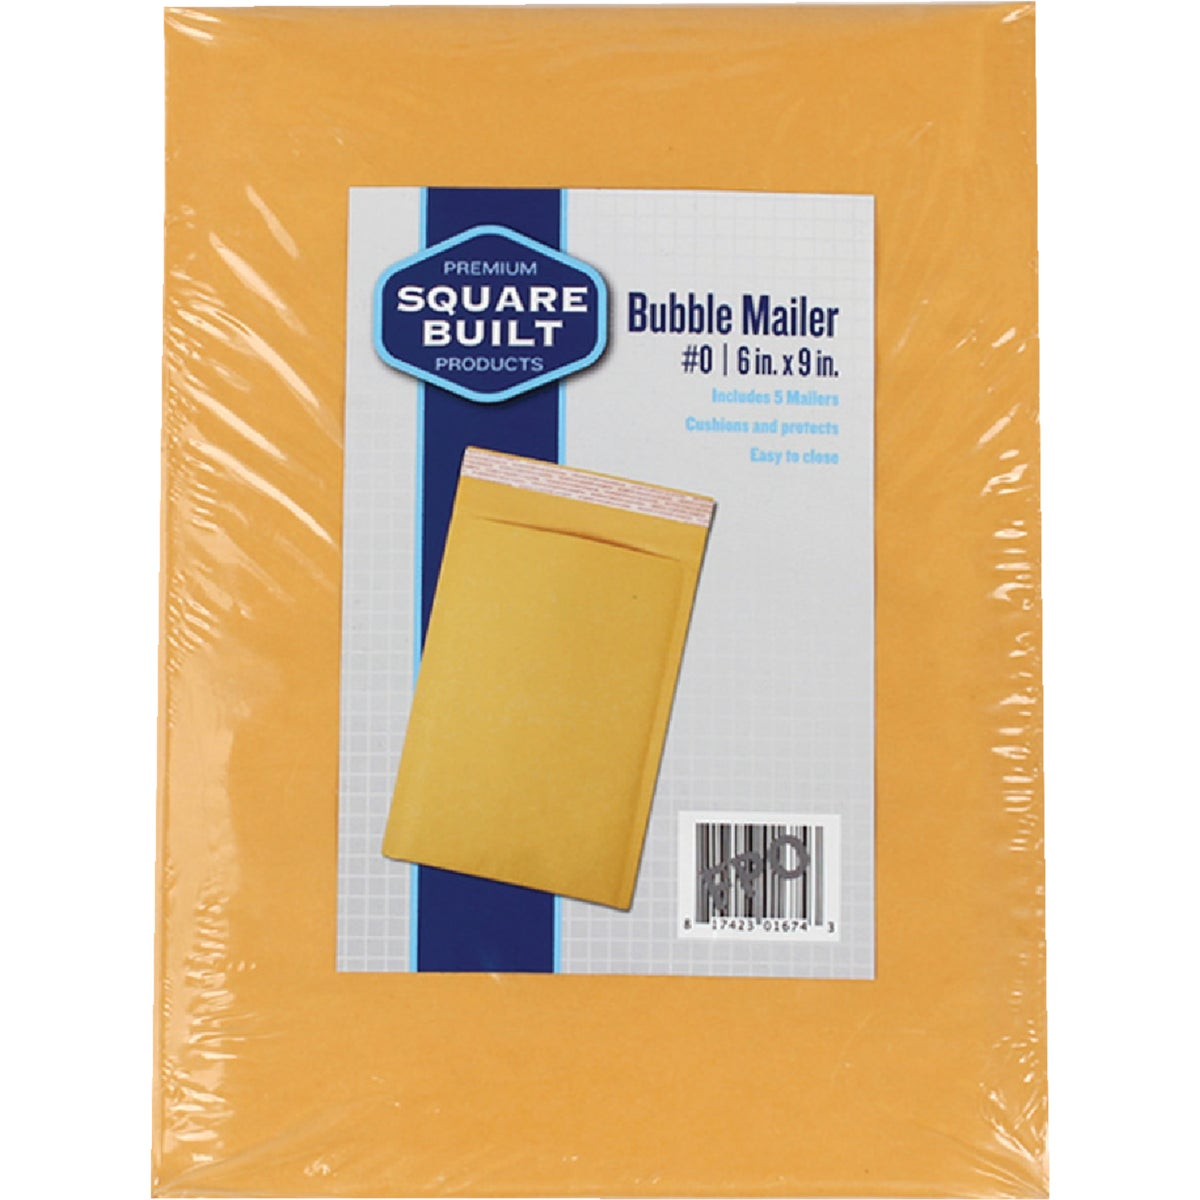 6PK 6X9 BUBBLE MAILER - 7913-6 by 3m Co